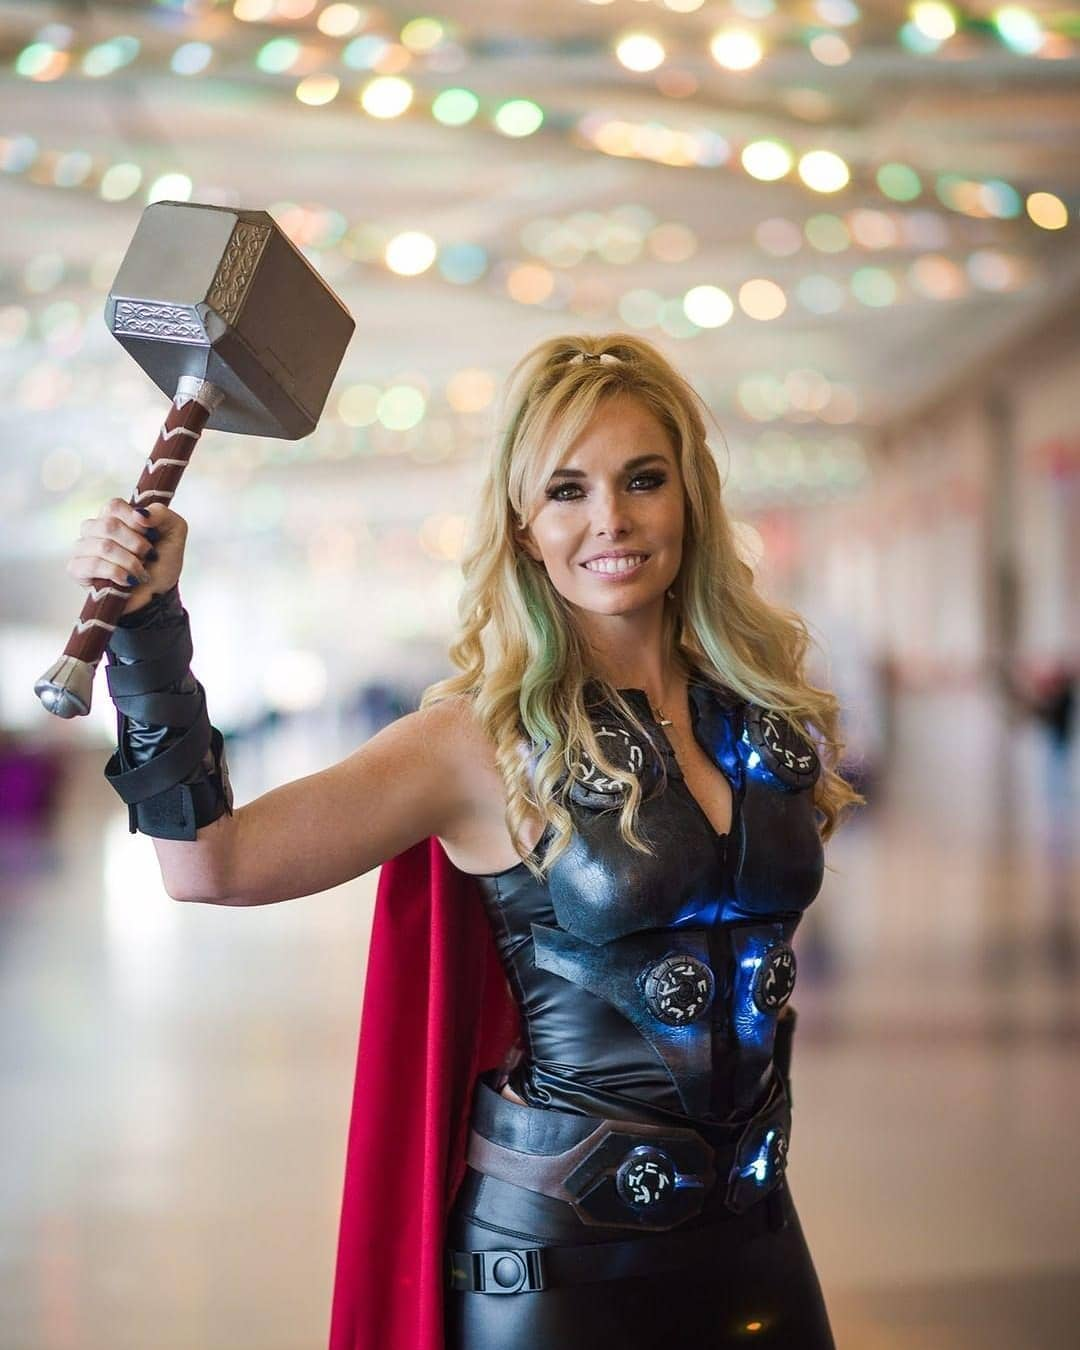 Free Comic Book Day Etiquette: Lady Thor Cosplay Free Comic Book Day 2019 By Brokephi316